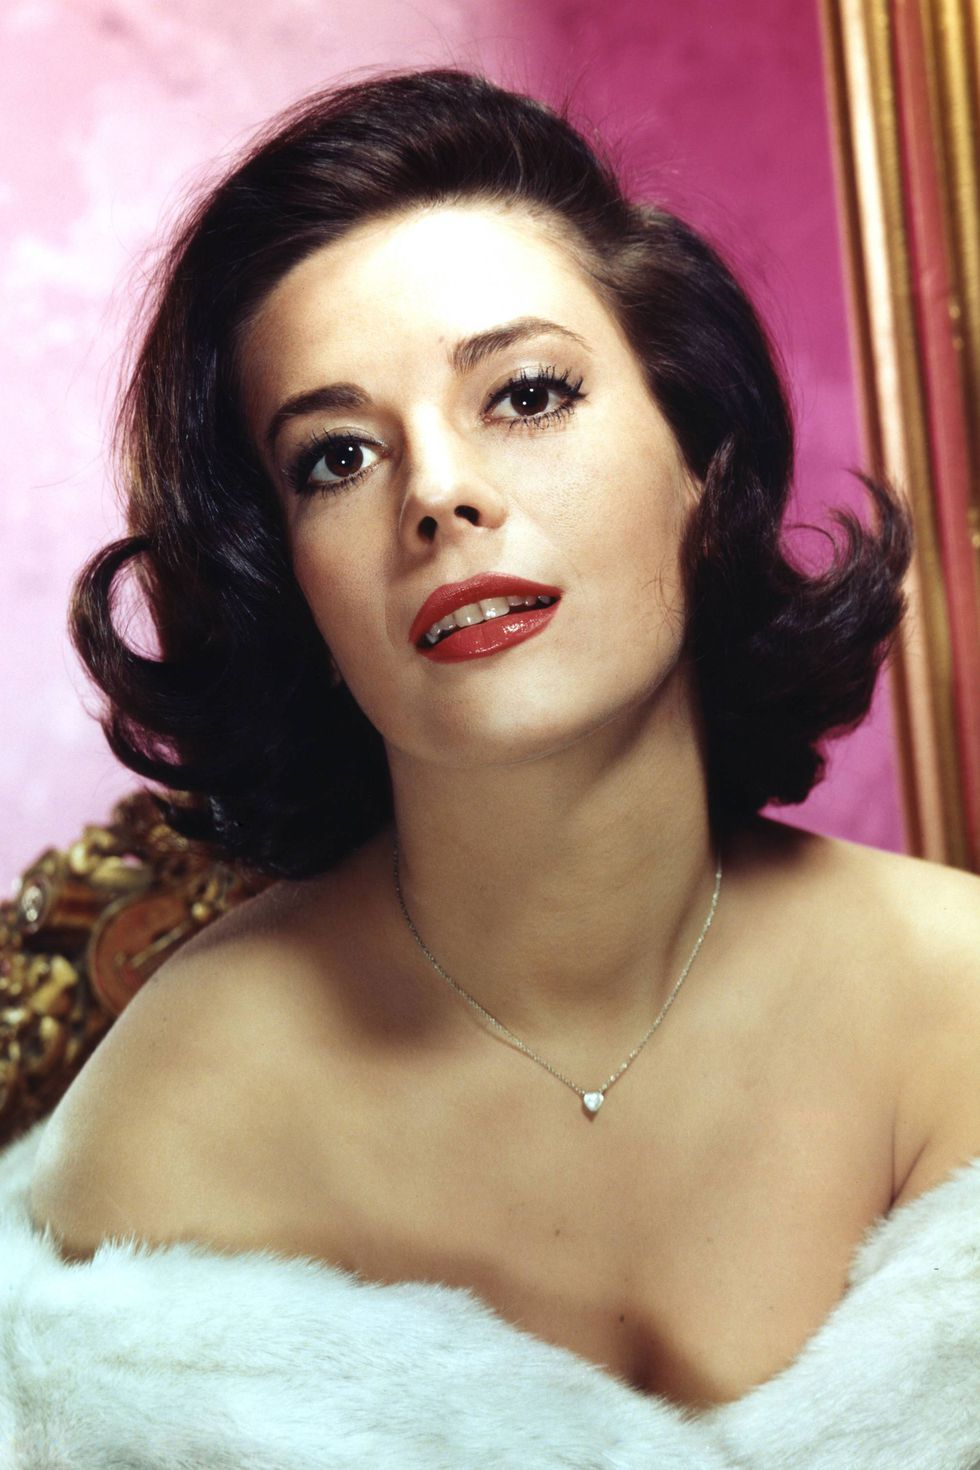 17 Photos That Prove Natalie Wood Is the Hollywood Icon You Should Be Obsessed With #hollywoodstars